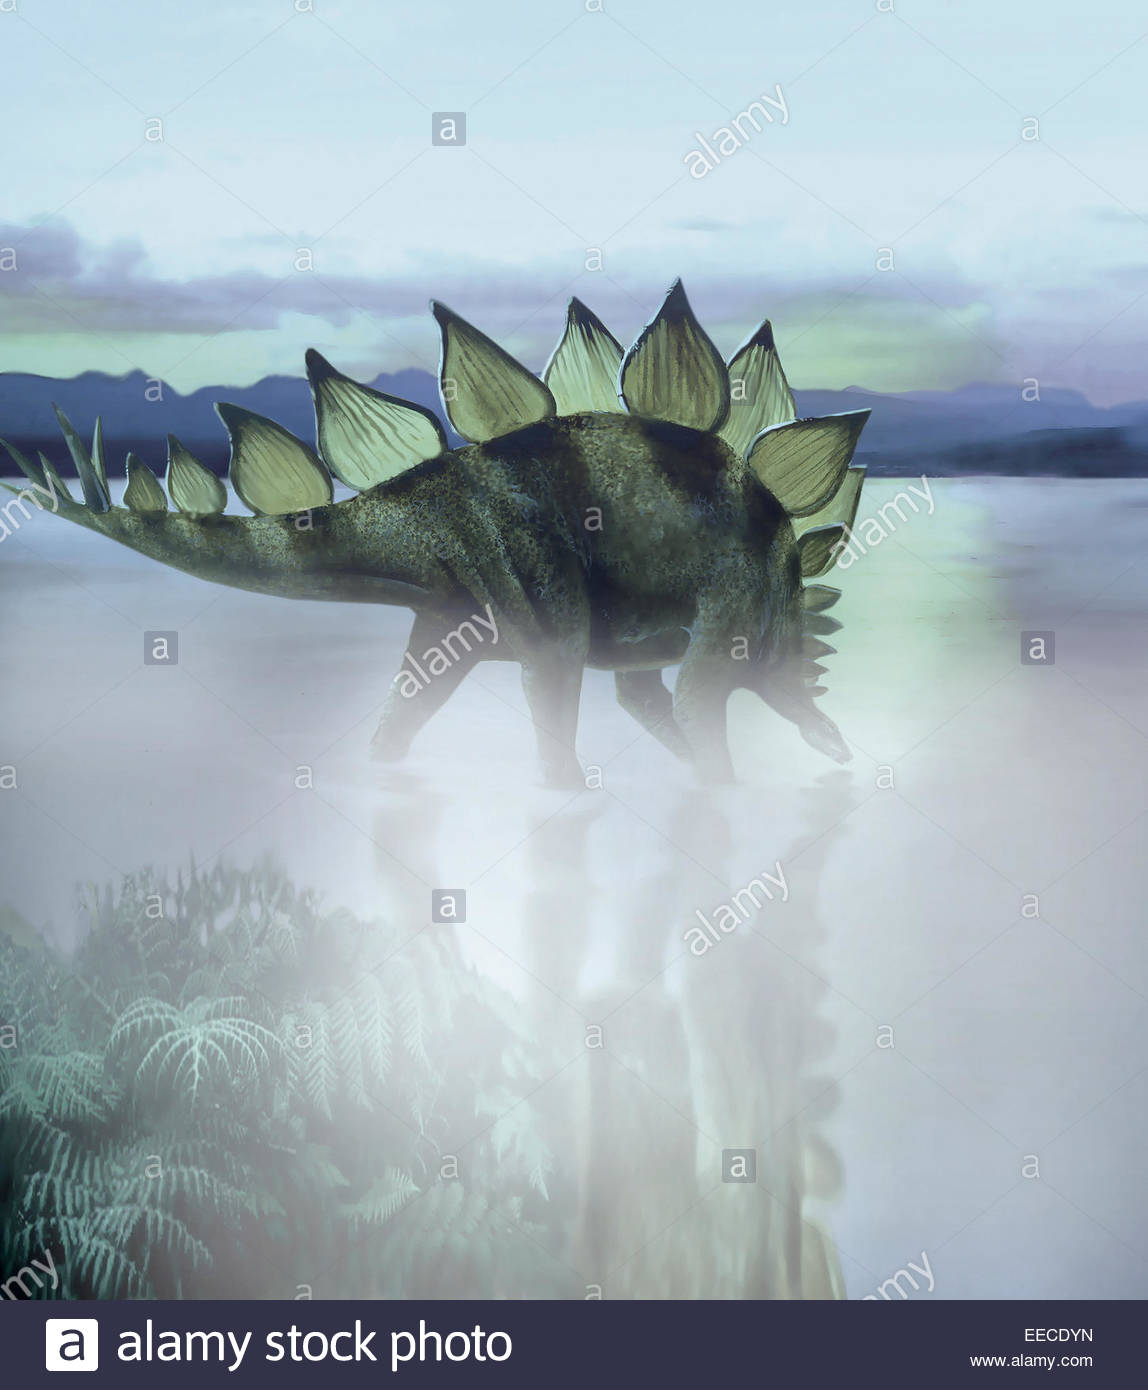 A Stegosaurus dinosaur grazing in a prehistoric lake. The plates on a Stegosaurus back were once believed to be - Stock Image